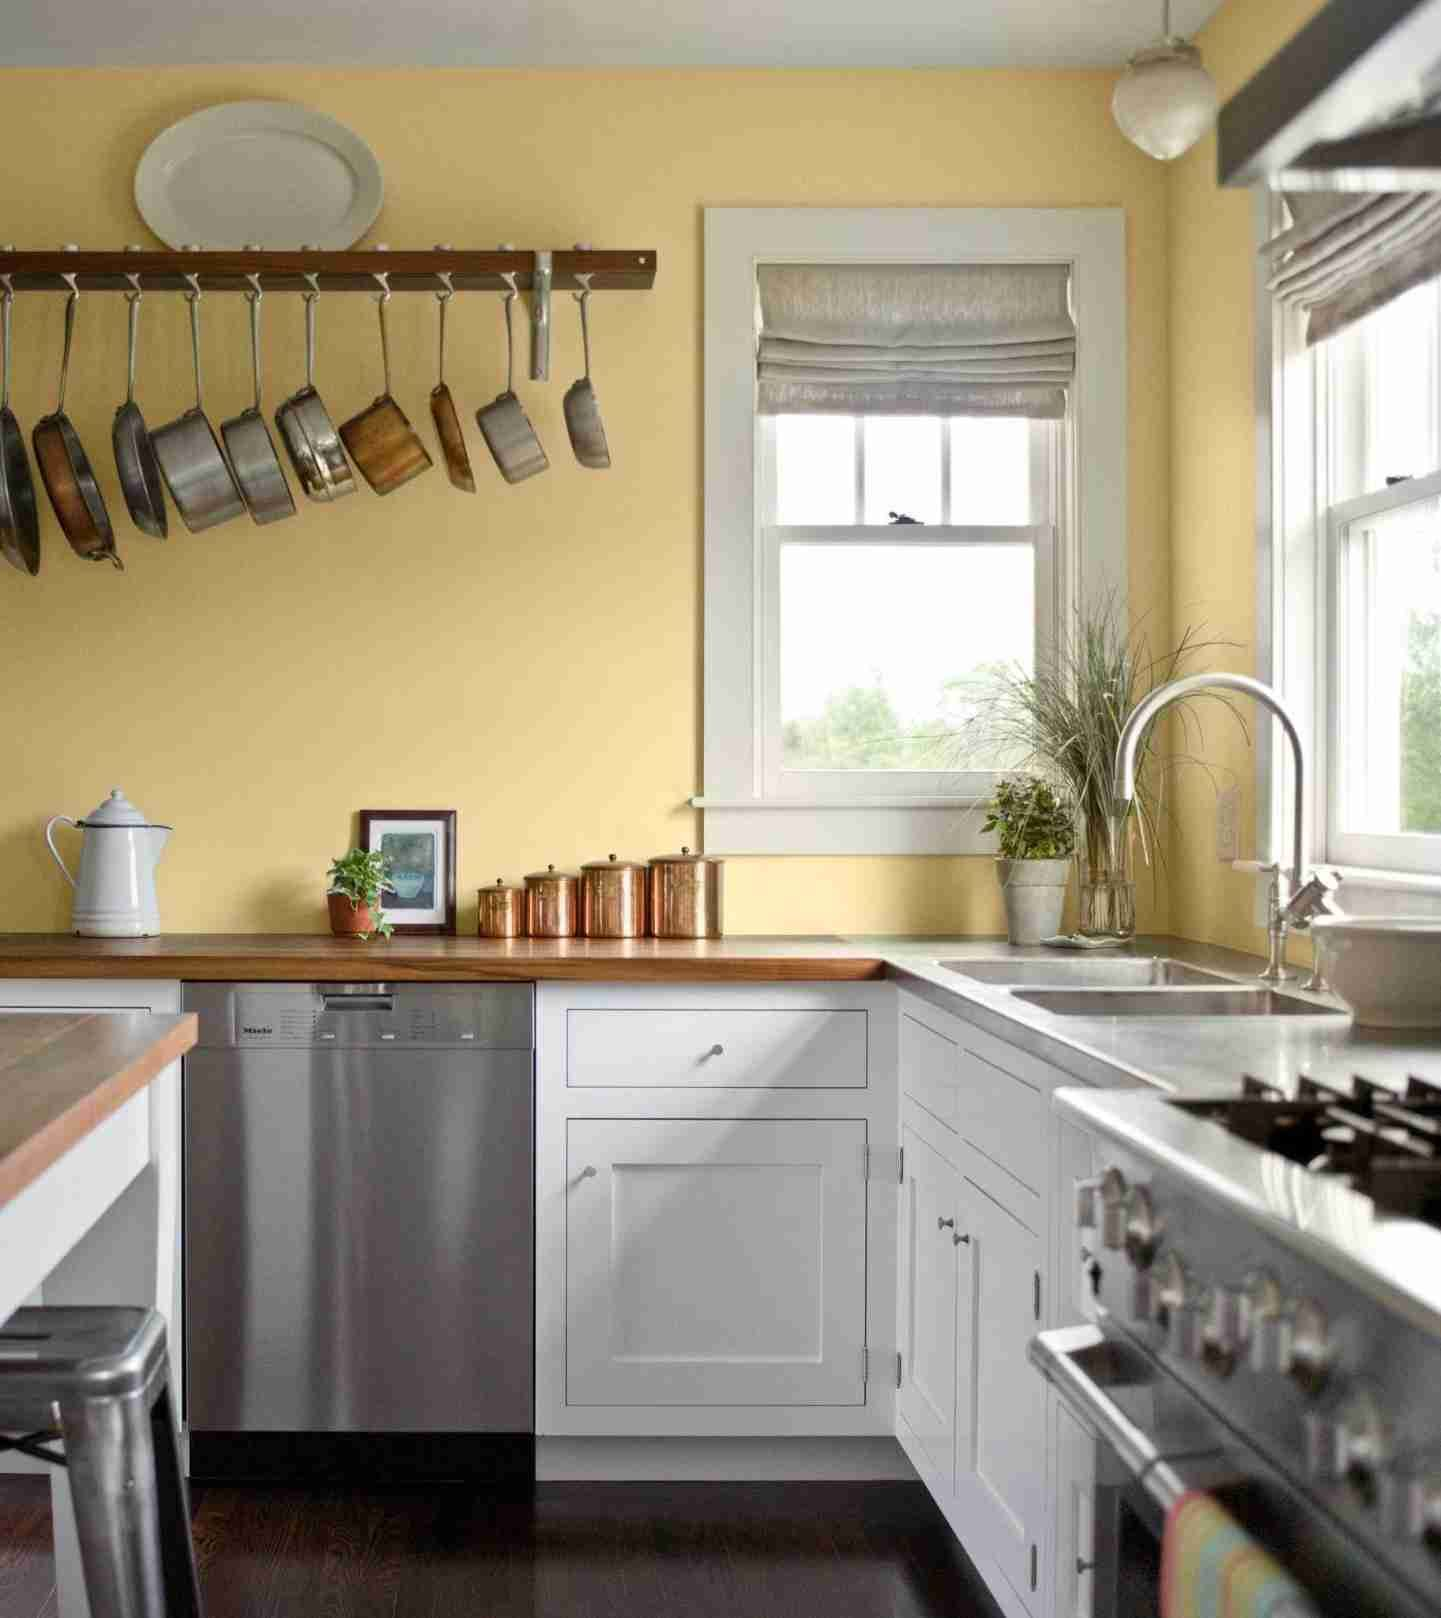 green paint for kitchen walls - kitchen exciting green wall colors ...